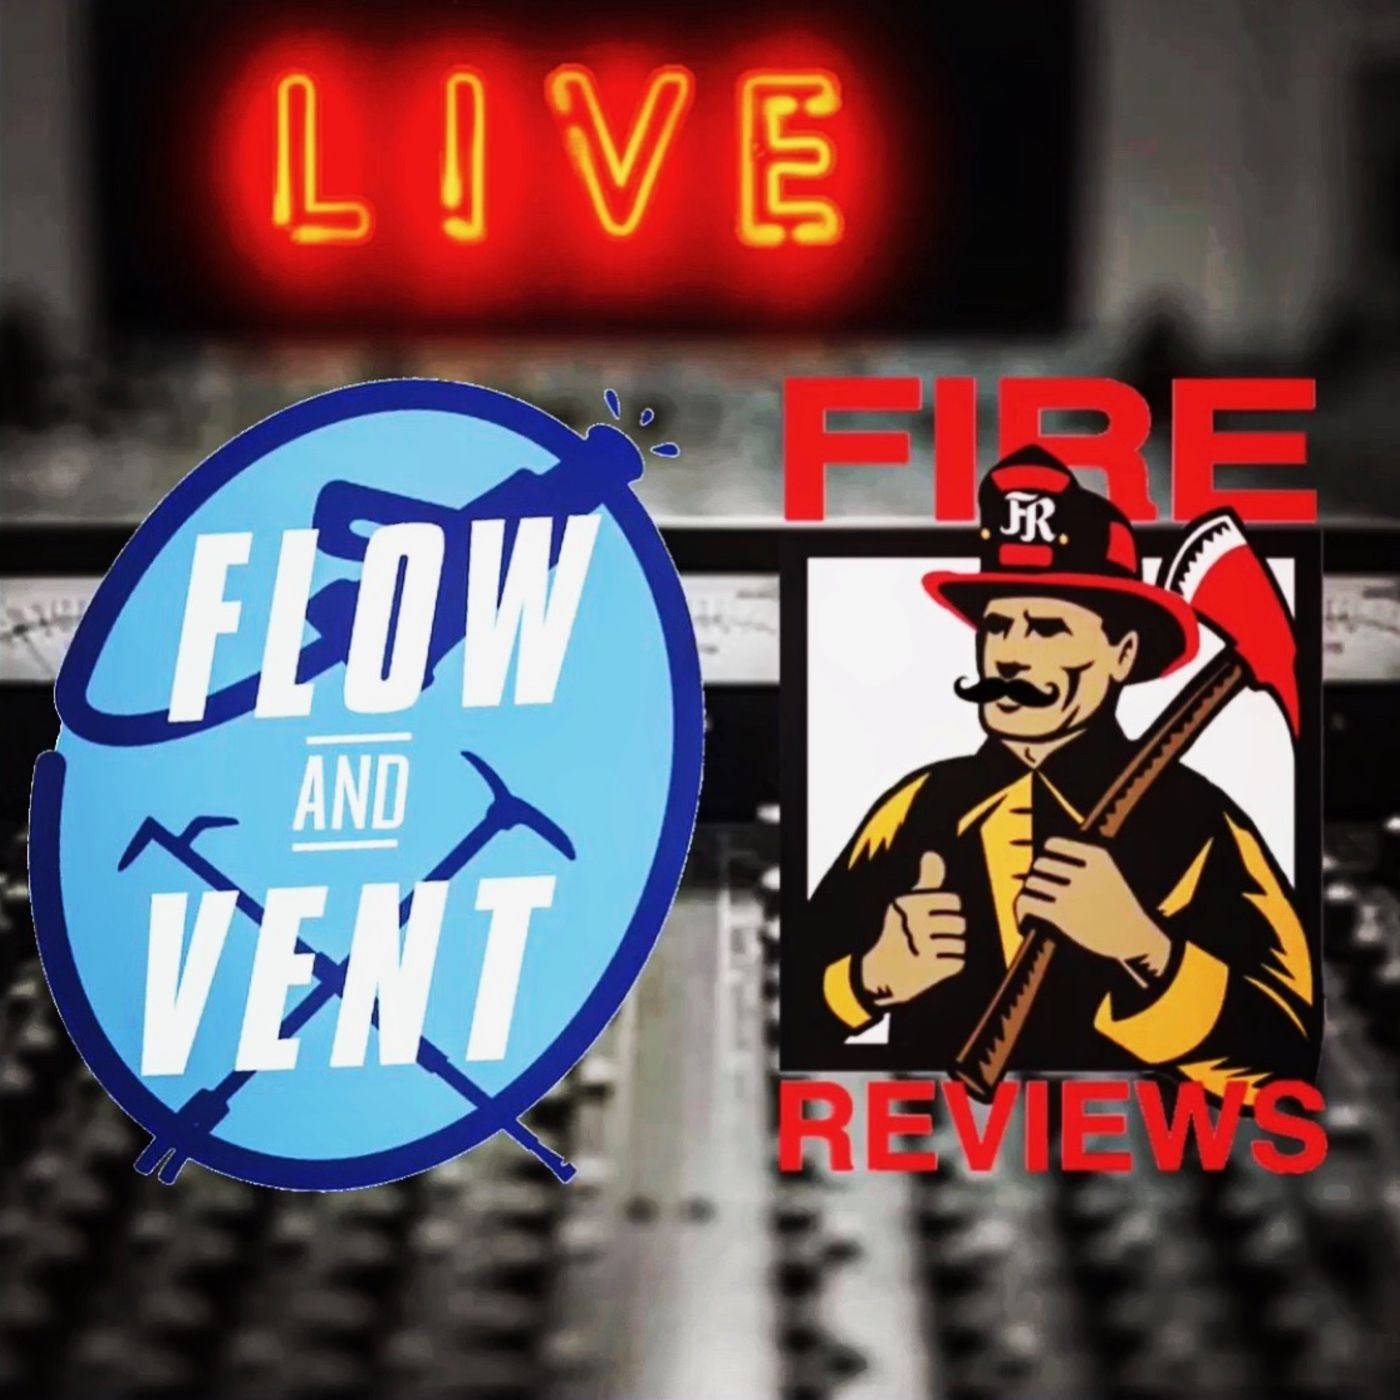 Episode 12 - The Fire Reviews Special